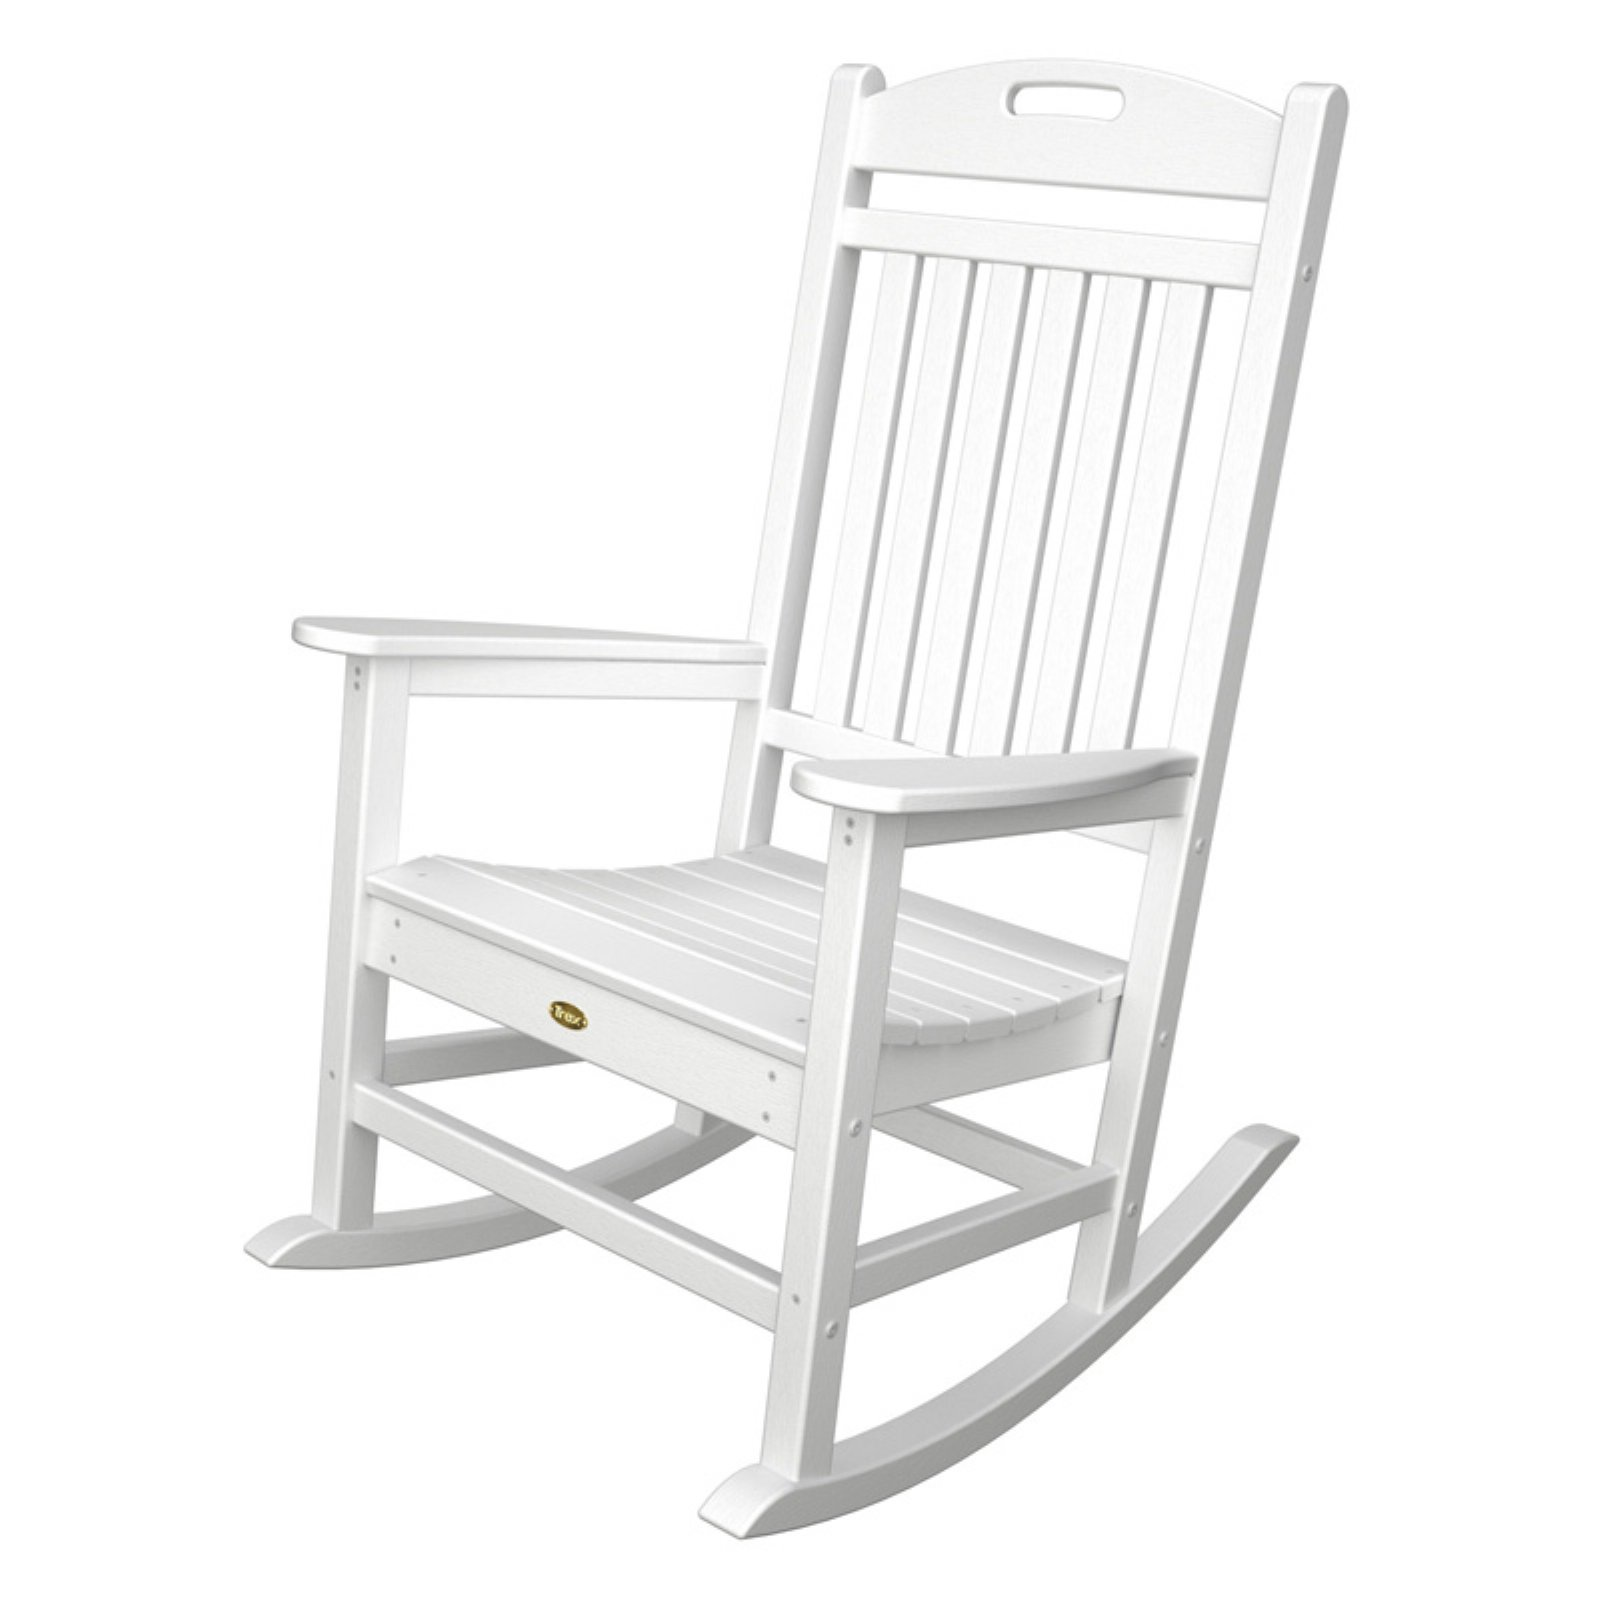 Charmant Trex Outdoor Furniture Recycled Plastic Yacht Club Rocking Chair